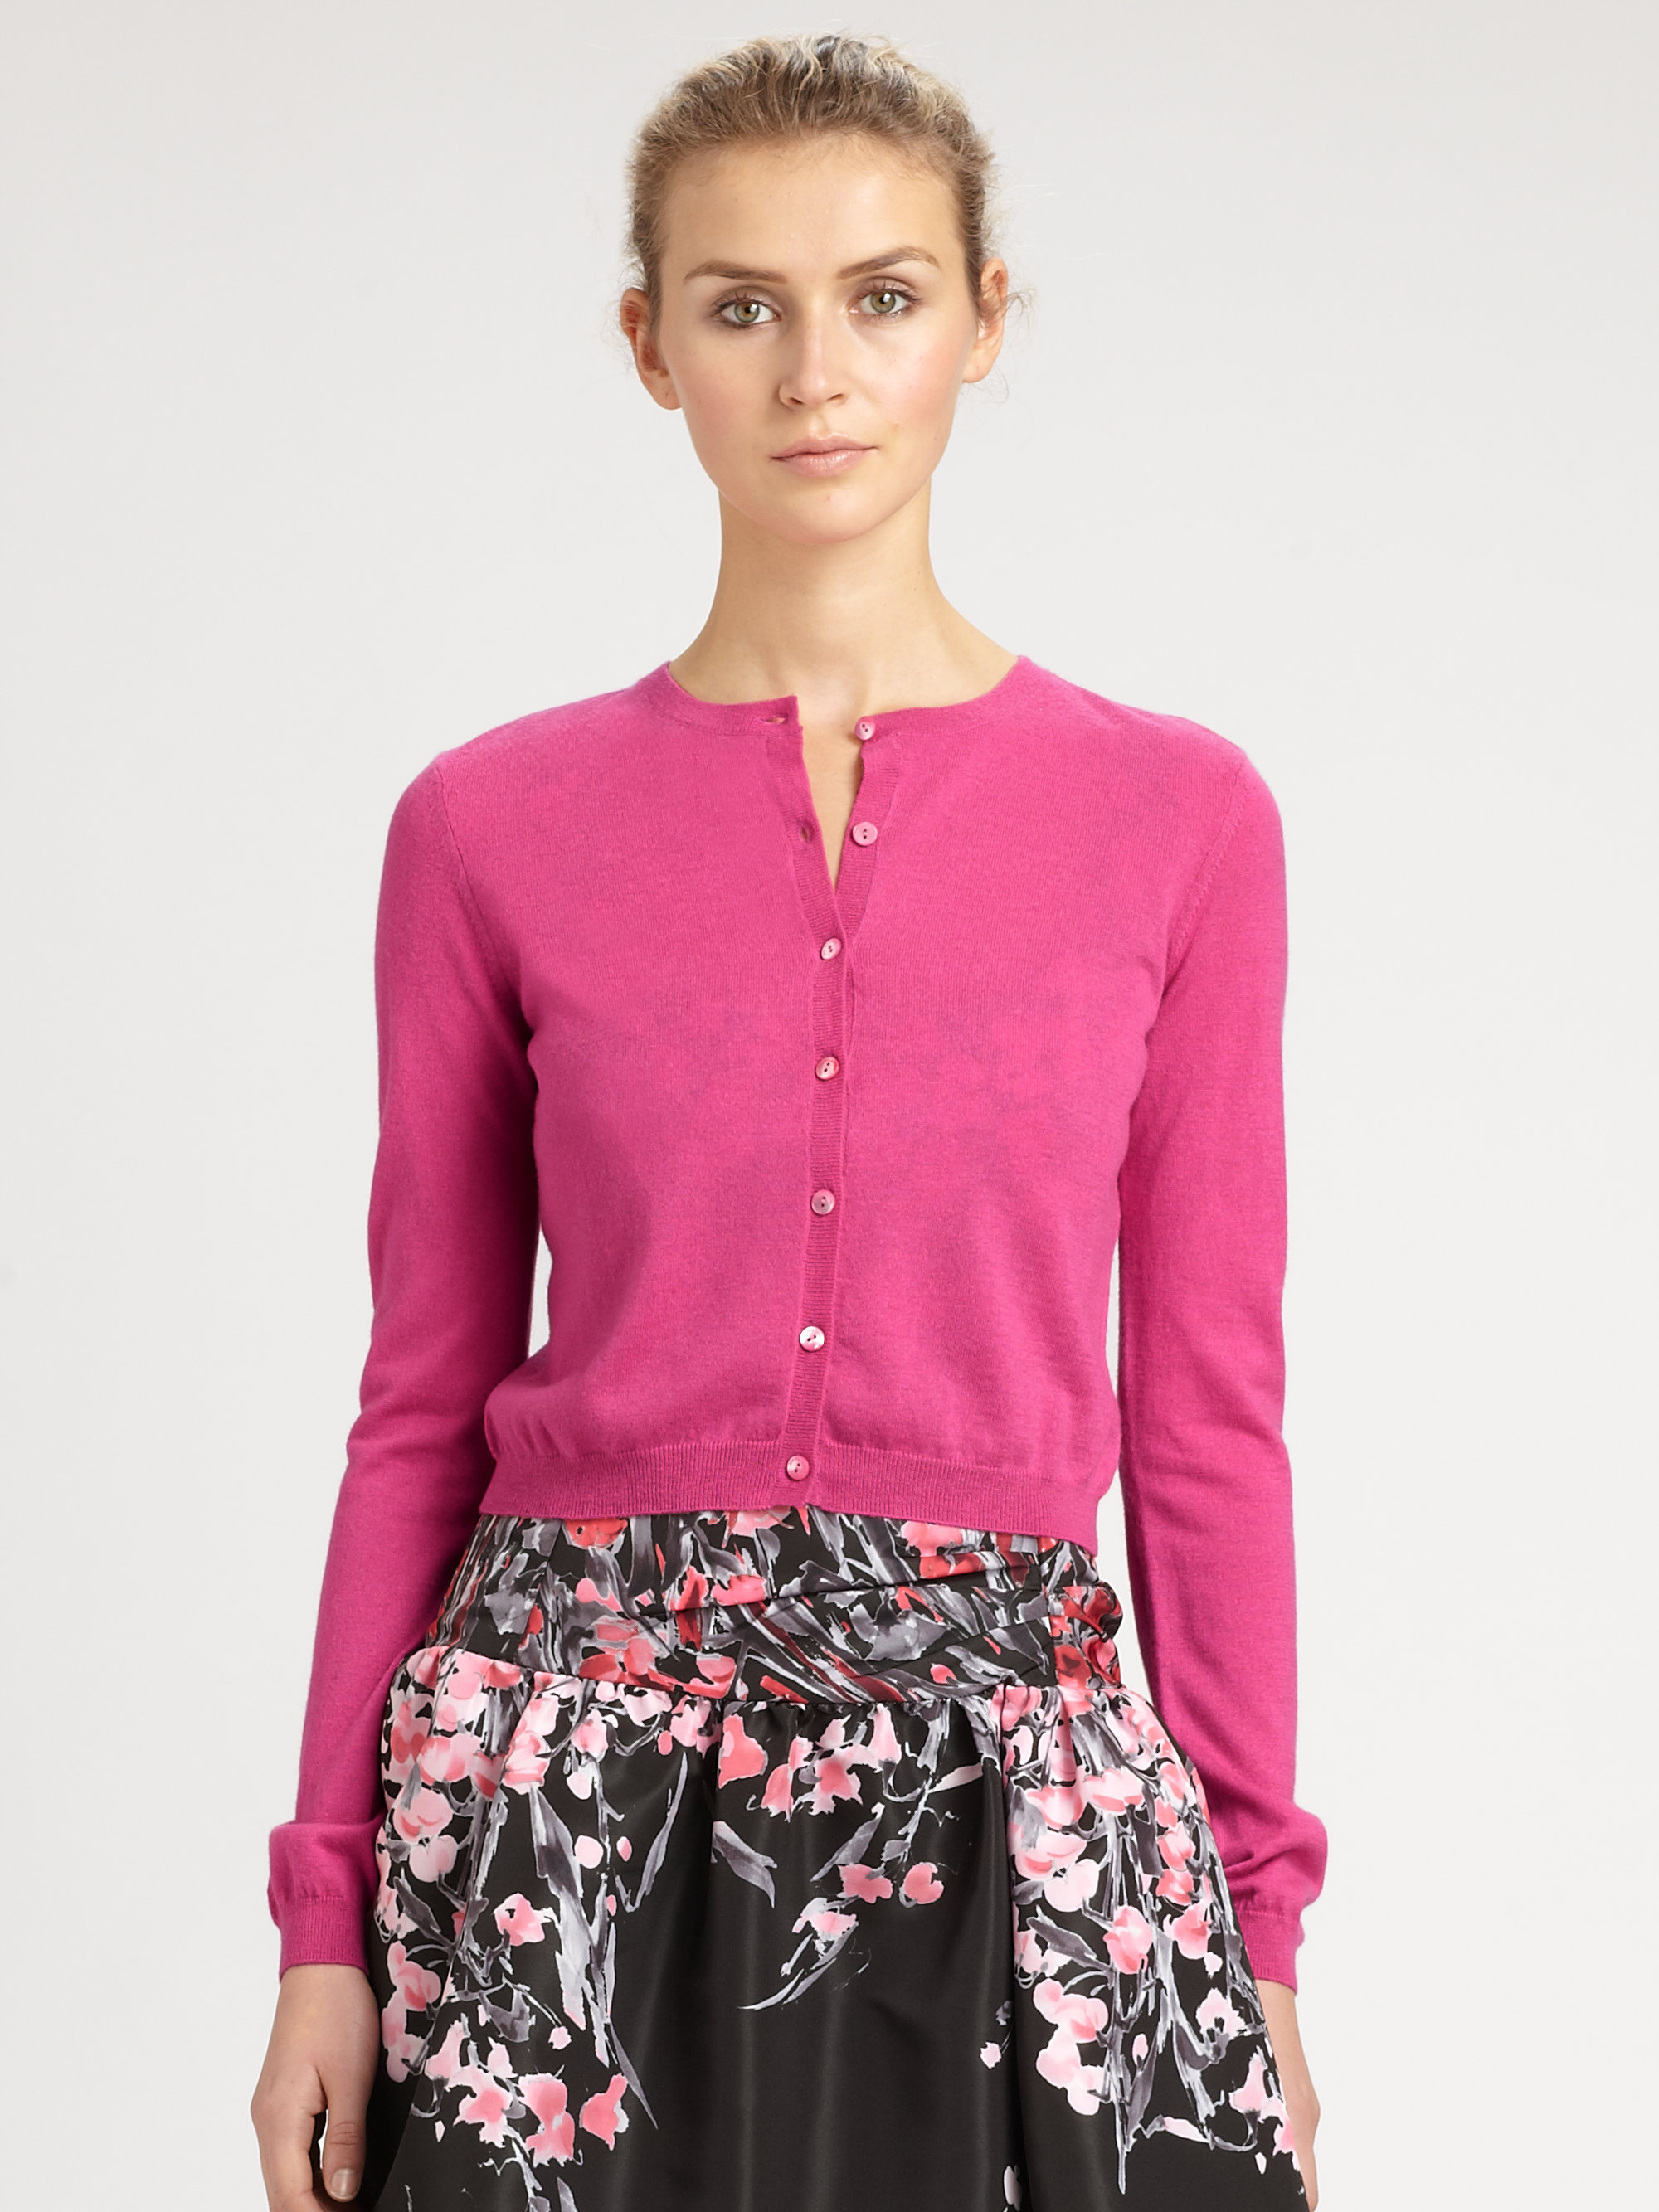 Red valentino Cropped Cashmere Cardigan in Pink | Lyst